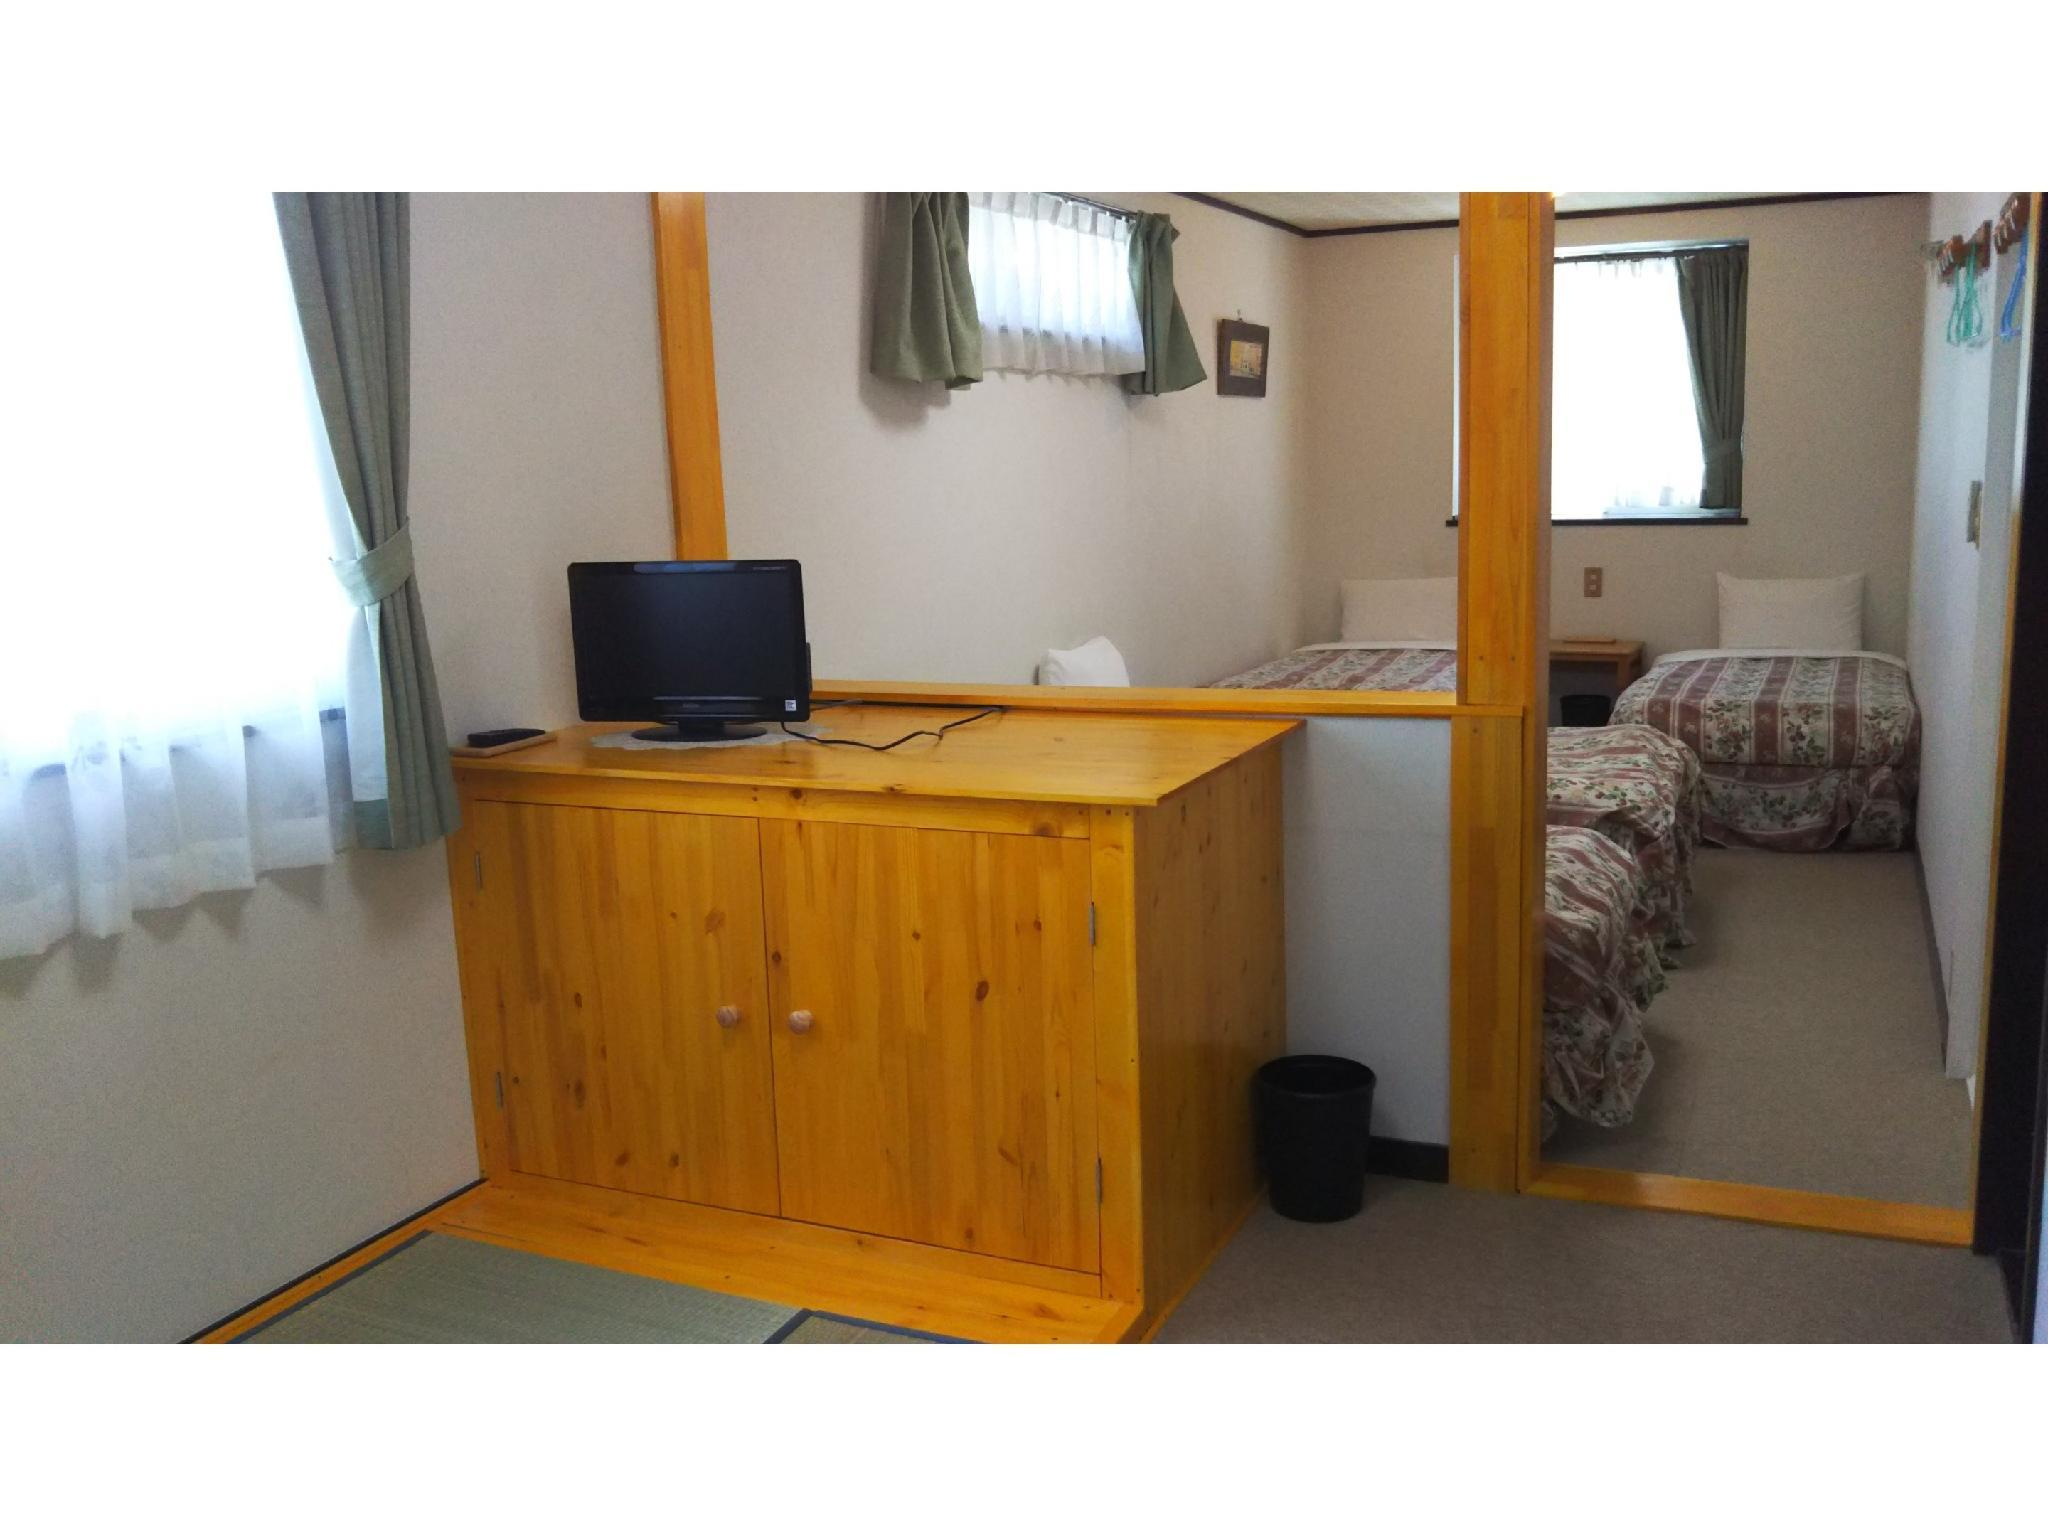 Quad Room *No bath or toilet in room